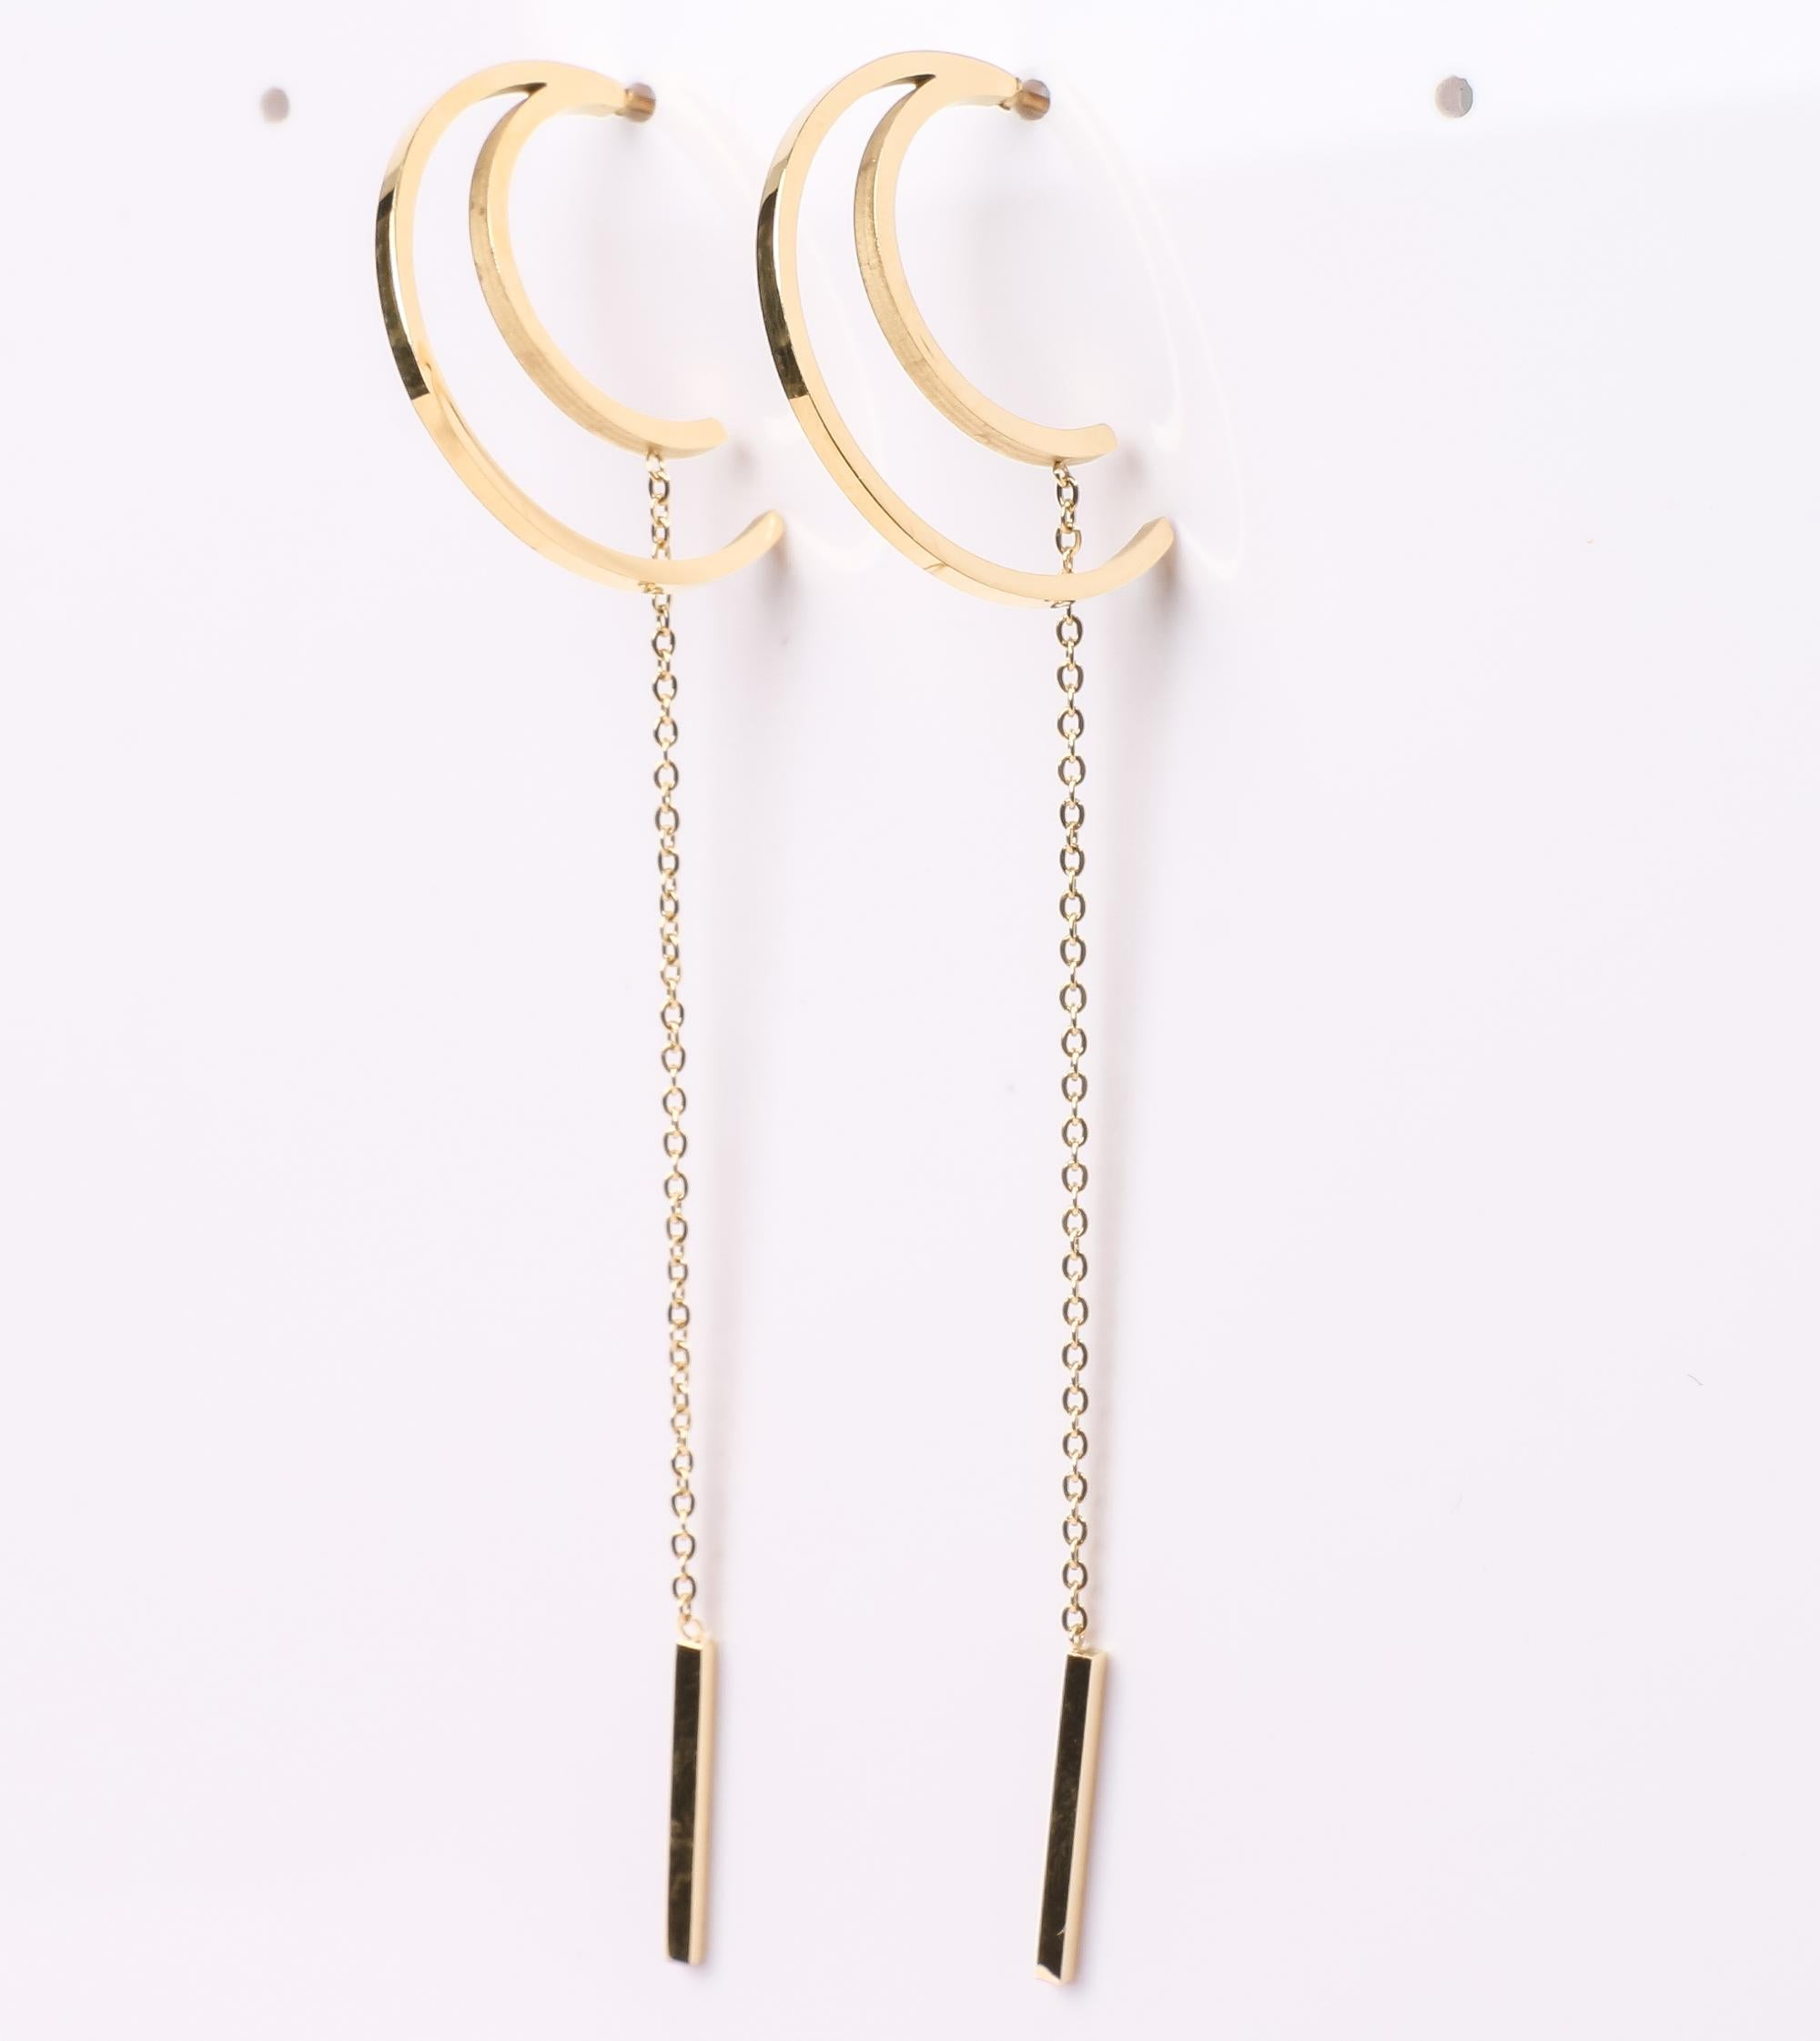 Stylish Rhodium Plated Silver Hook Drop Earrings